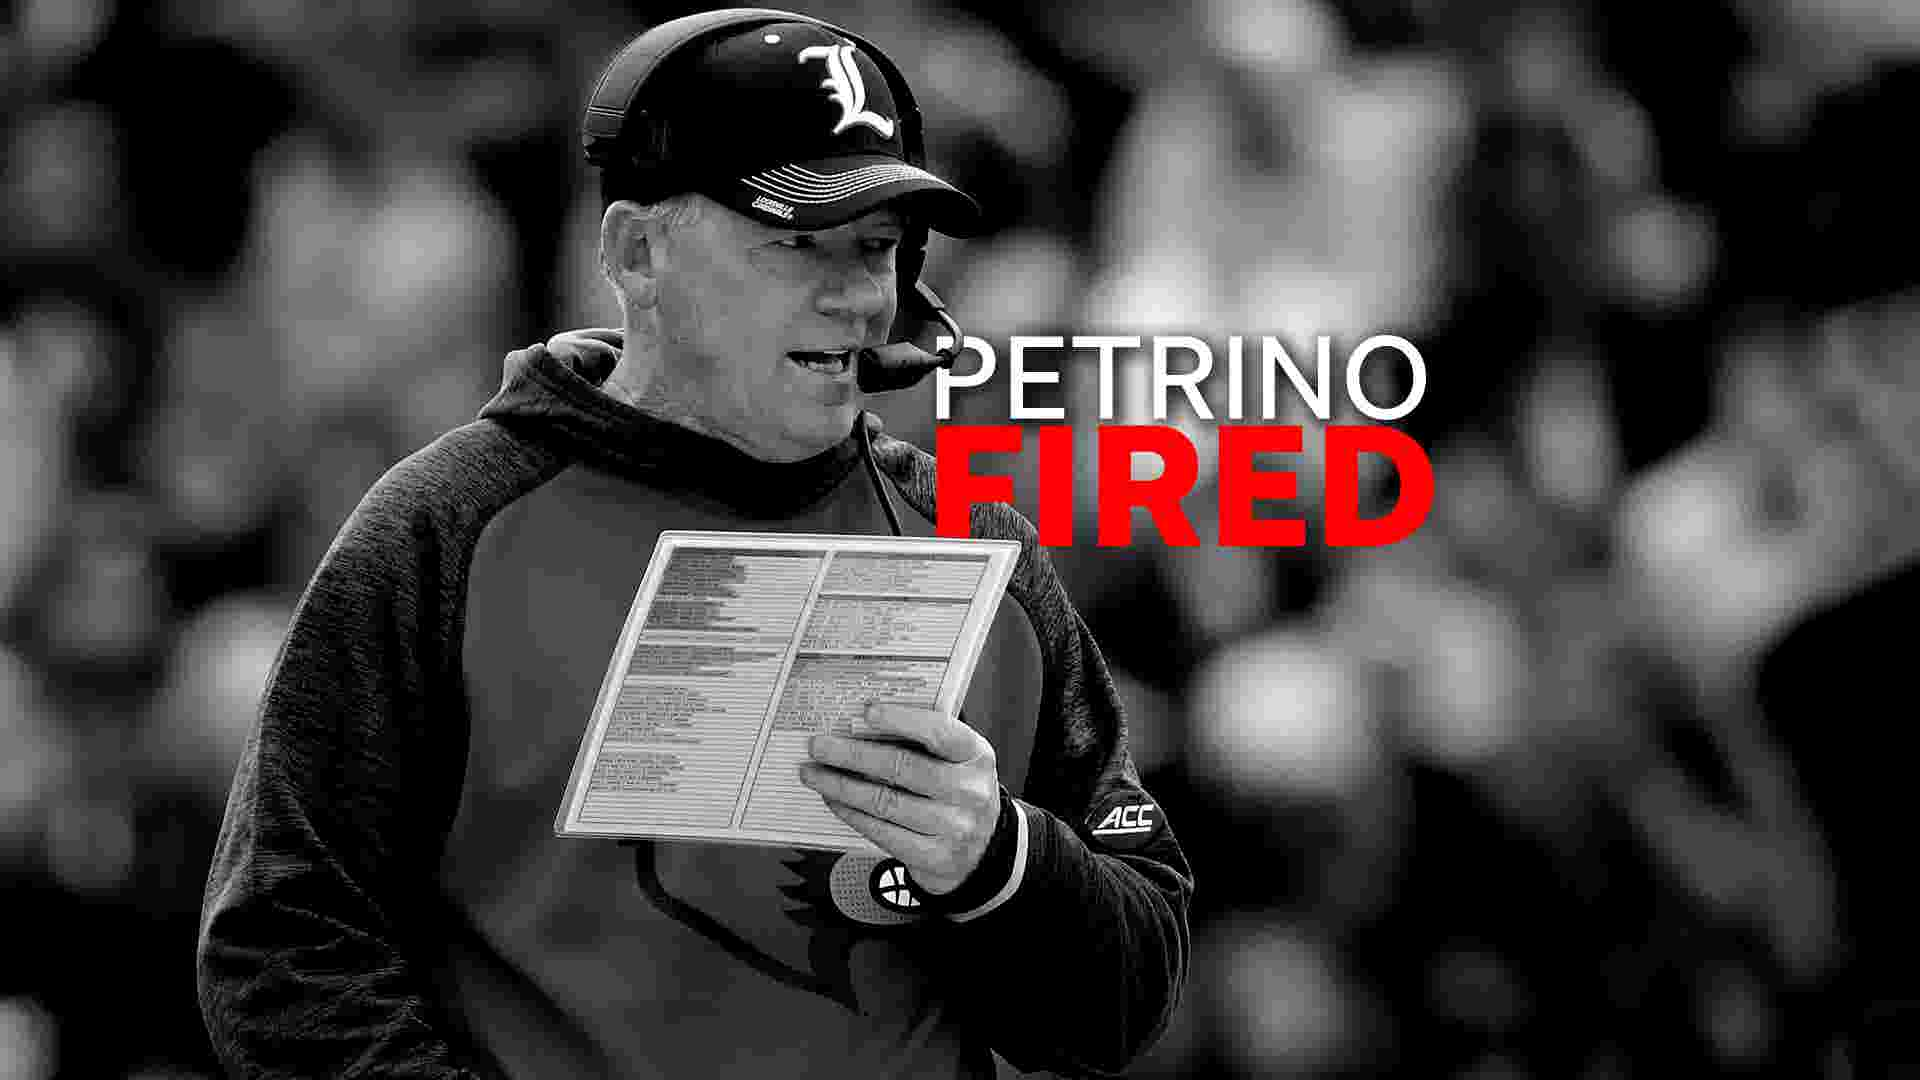 Bobby Petrino Firing Evokes Mike Zimmers Gutless Expletive Quote